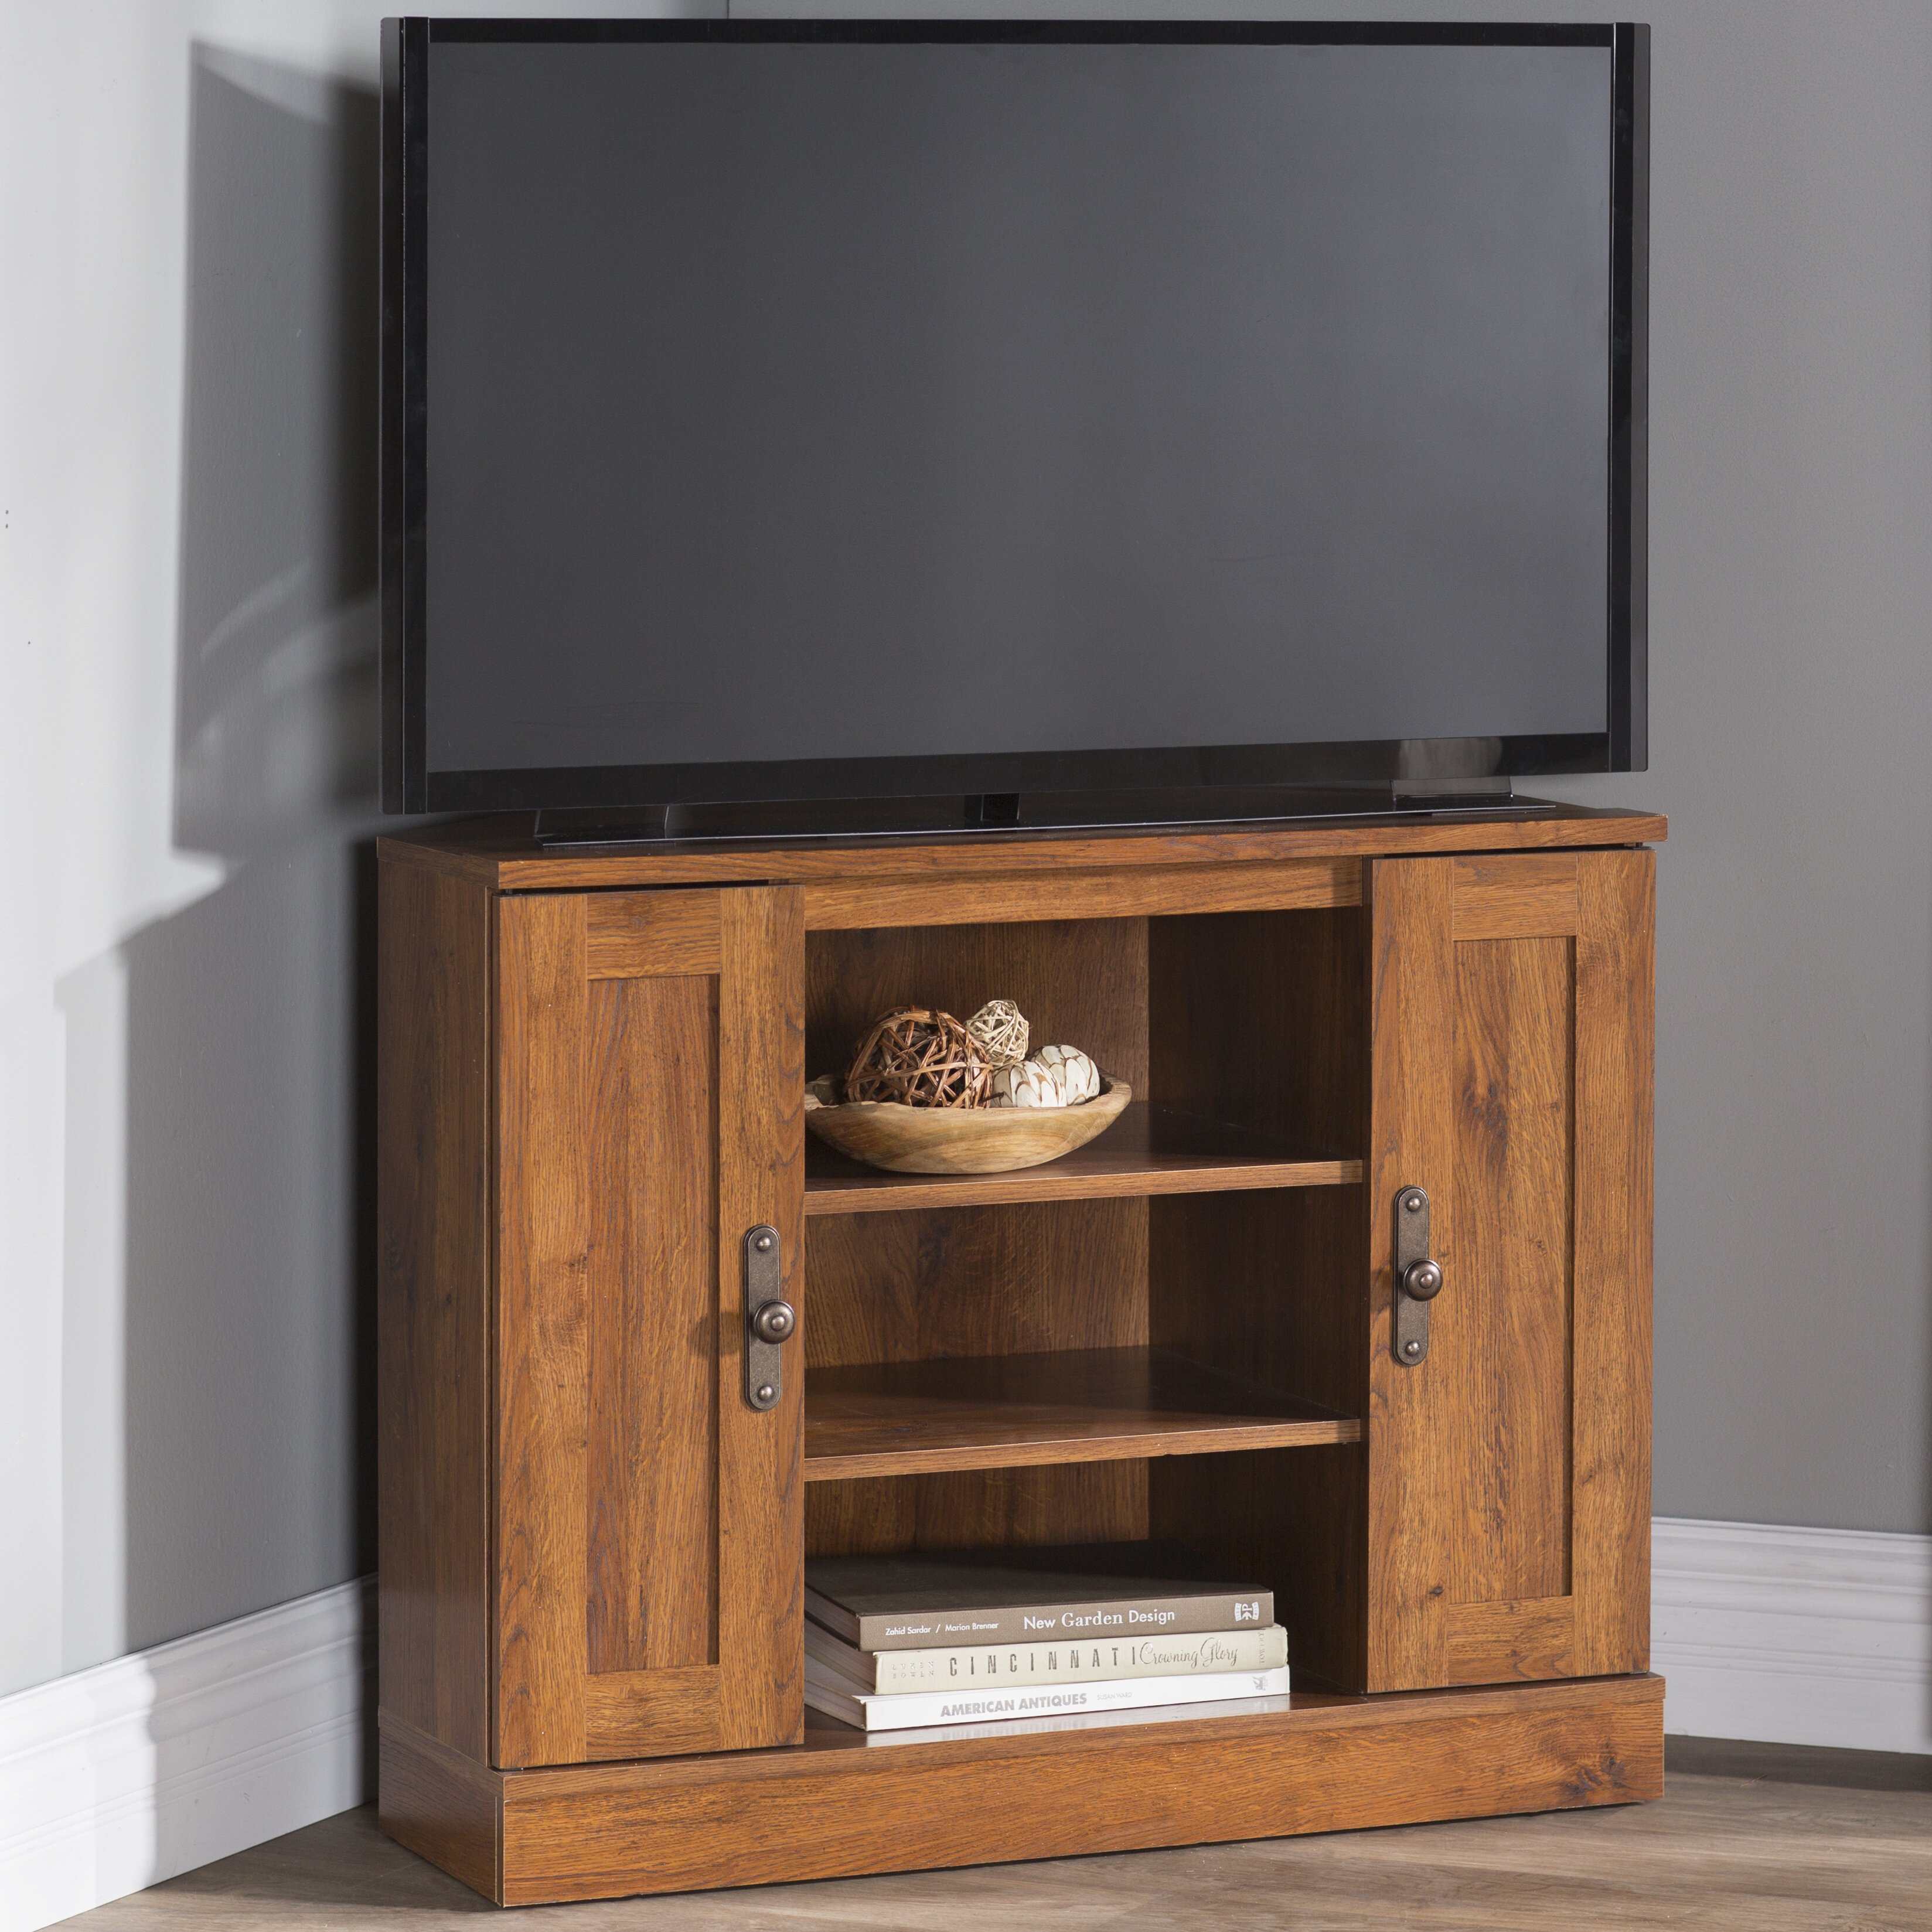 Alcott Hill Englewood Corner Tv Stand For Tvs Up To 37 Reviews Wayfair Ca